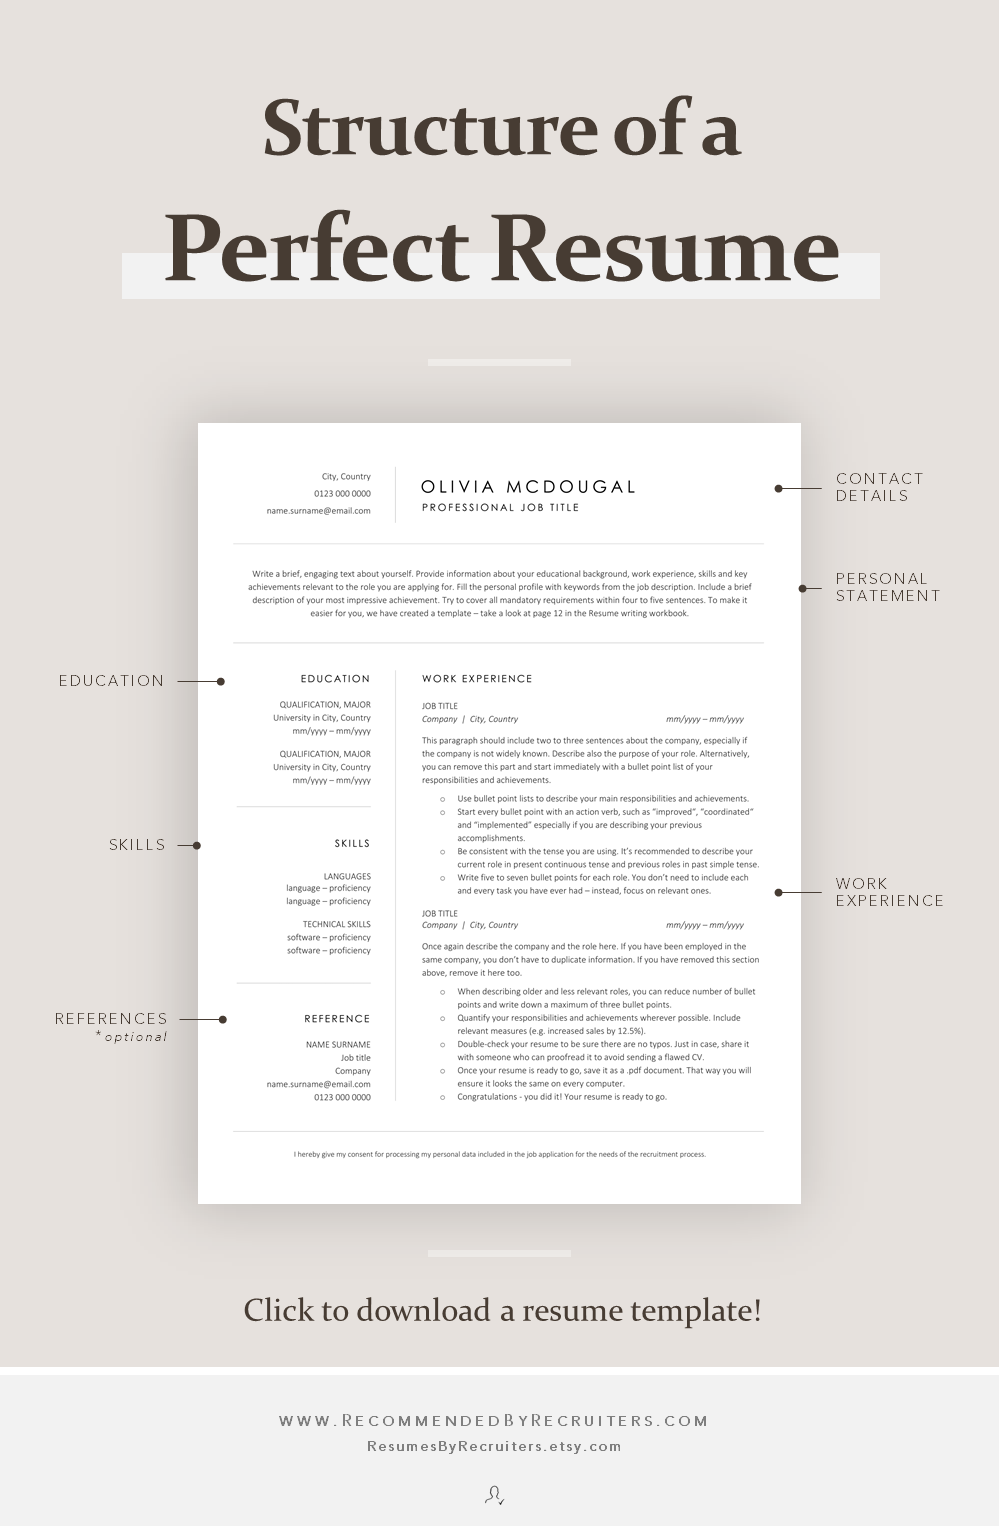 Simple and Clean Resume Template Professional Business CV